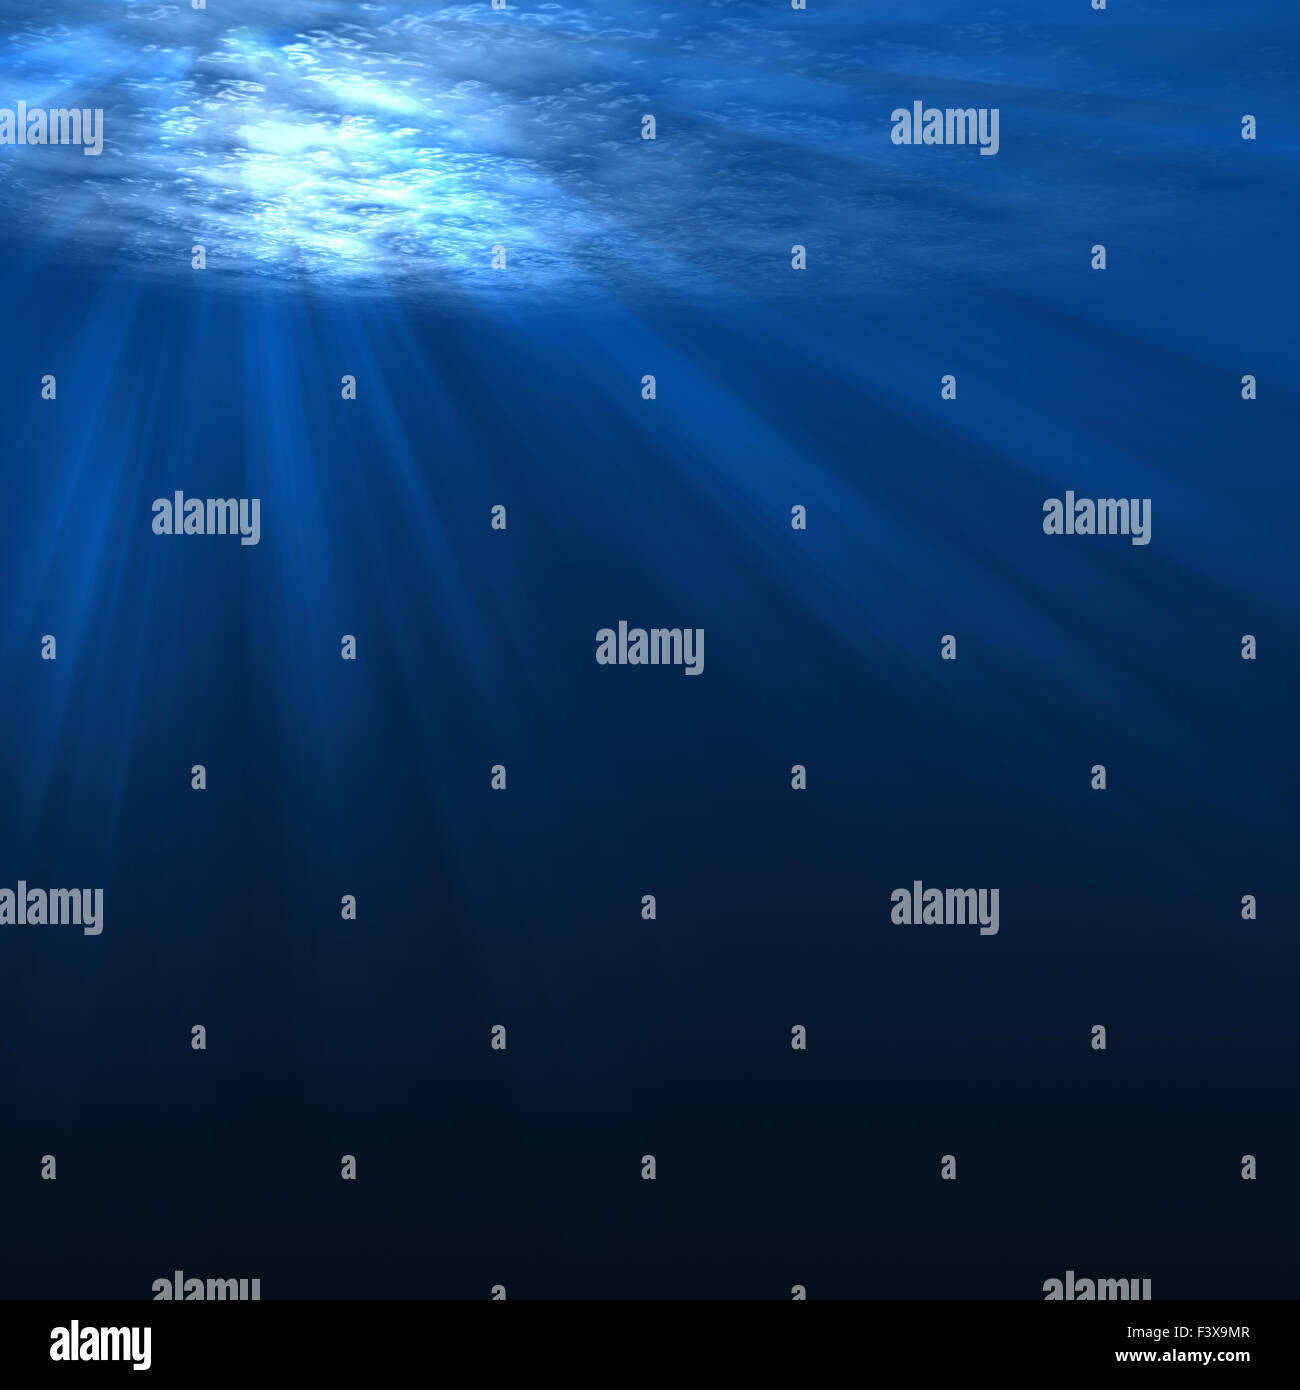 Underwater scene with rays of light - Stock Image